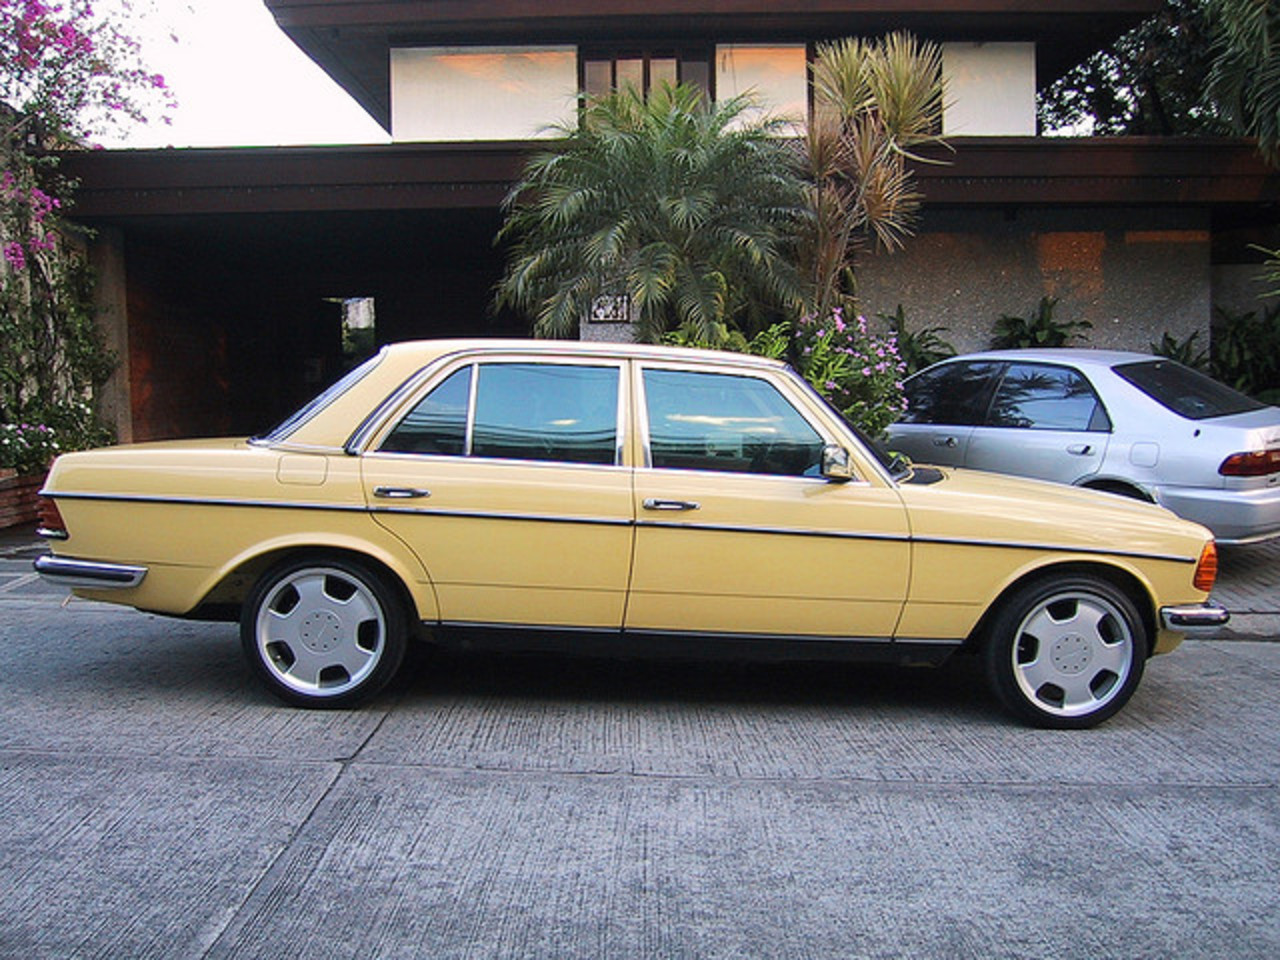 1983 Mercedes Benz W123 280E - 100-0042_IMG | Flickr - Photo Sharing!